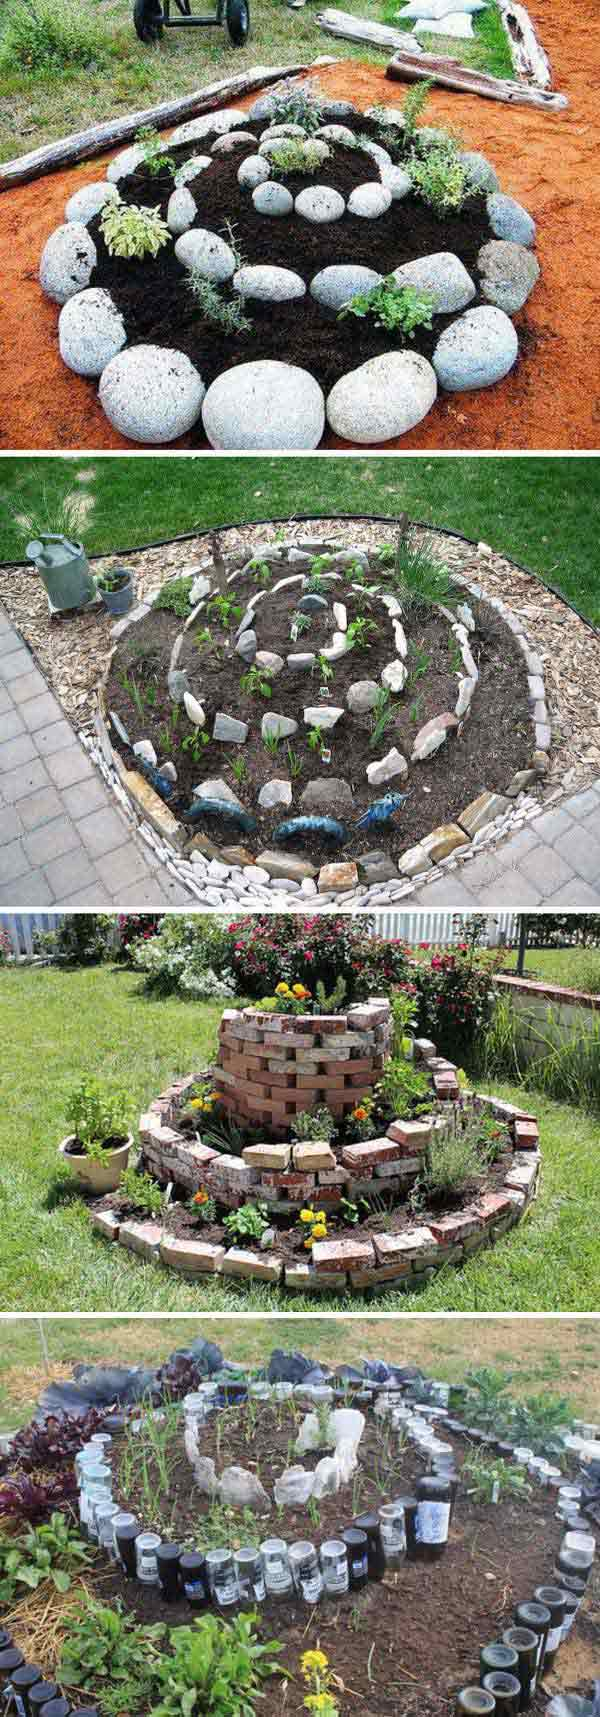 Pictures of a vegetable garden - Spiral Garden Has Very Cool Looking And Works Great For People With Limited Space